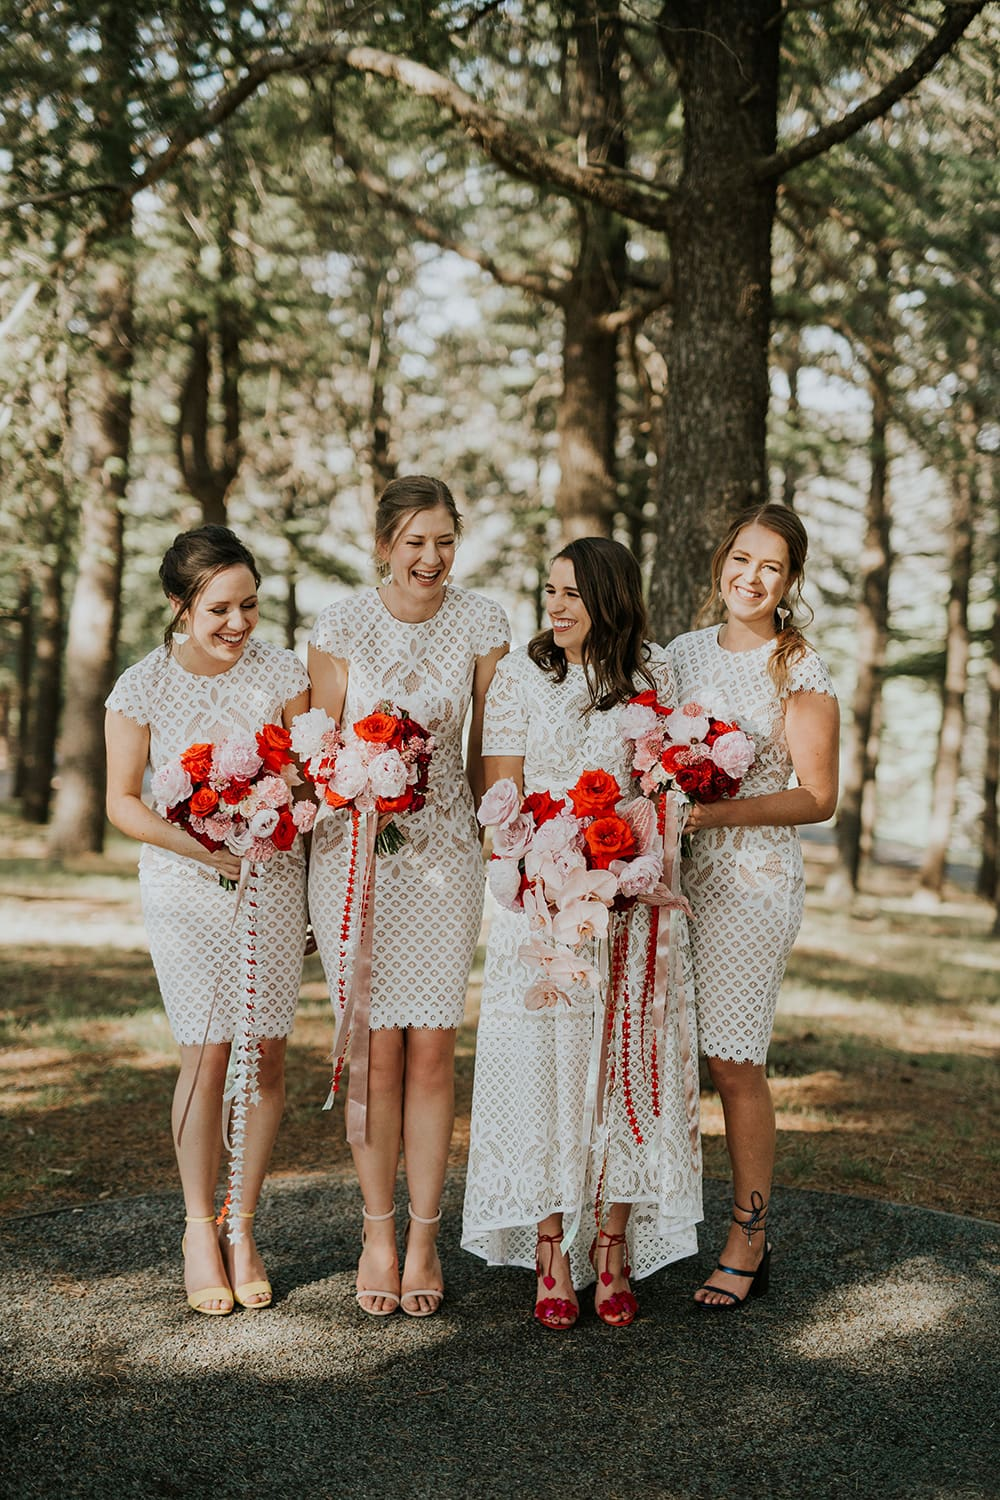 Modern Red & Pink Wedding Ideas | White lace bride and bridesmaid dresses paired with pink and red bouquets featuring roses, orchids and trailing ribbons | Photography: Alana Taylor Photography via Hello May